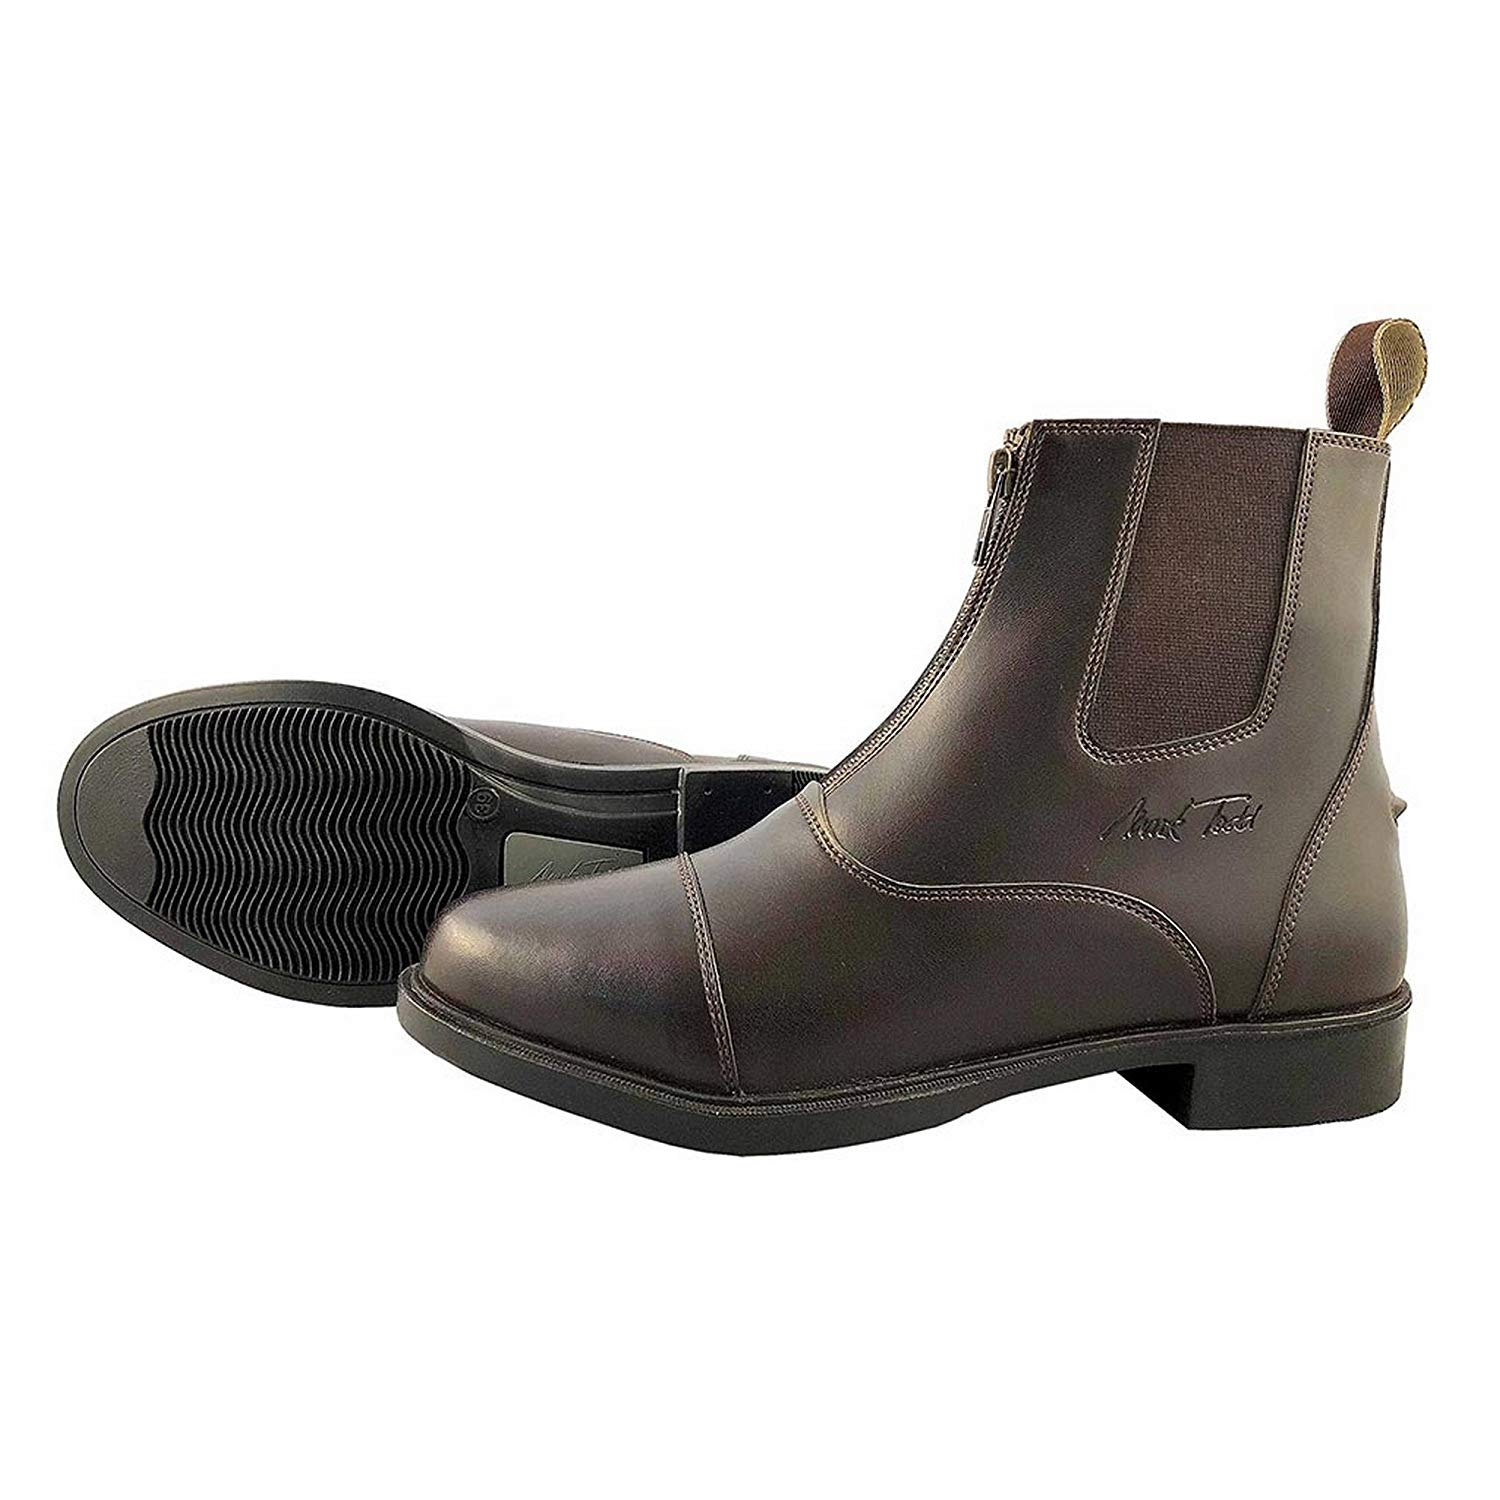 ee1c8b810bc Get Quotations · Mark Todd Adults Synthetic Jodhpur Boots with Front Zip